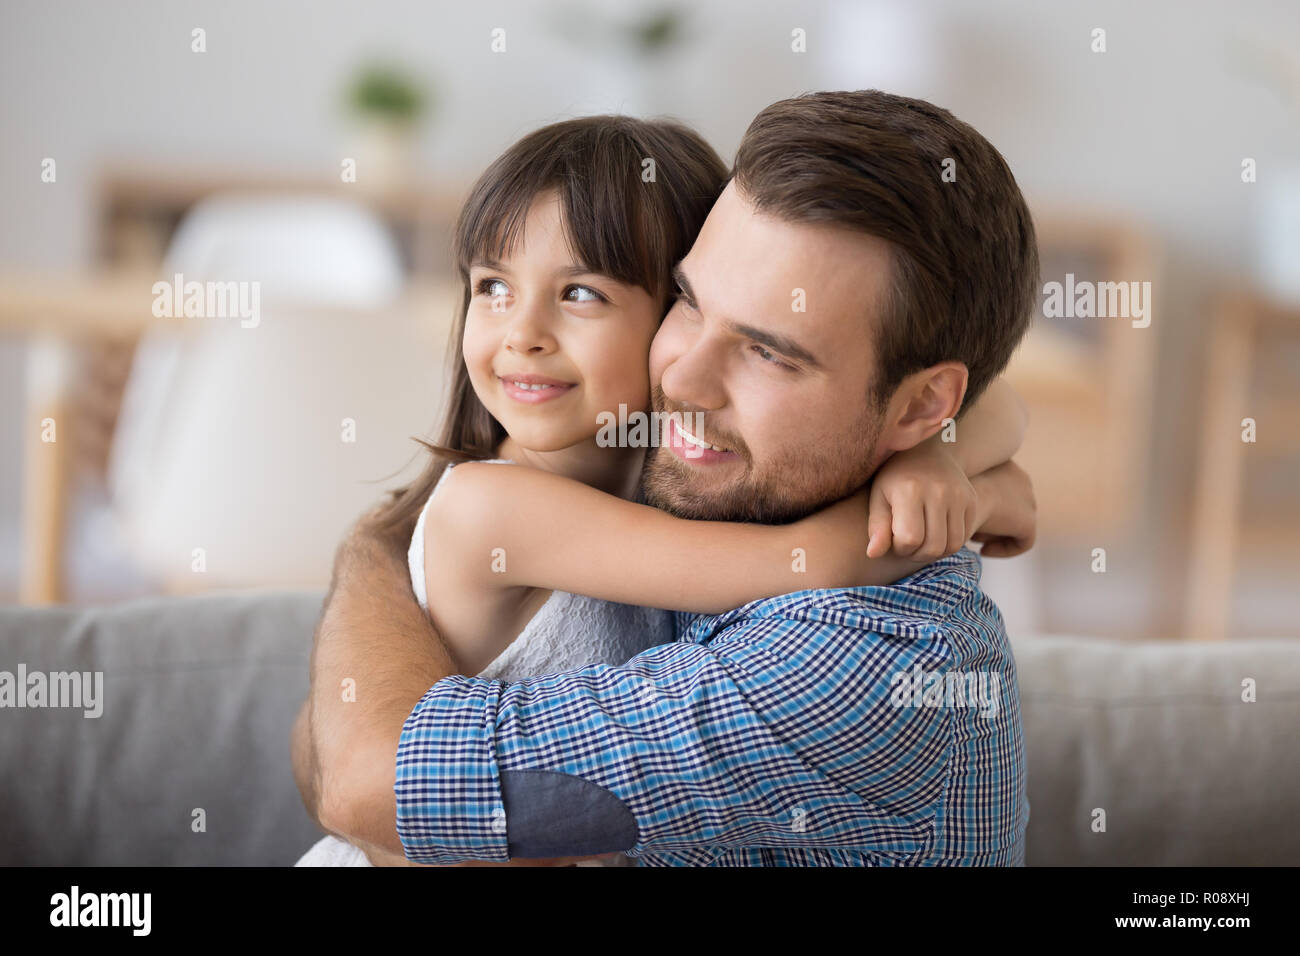 Father and daughter embracing sitting on couch looking at camera Stock Photo